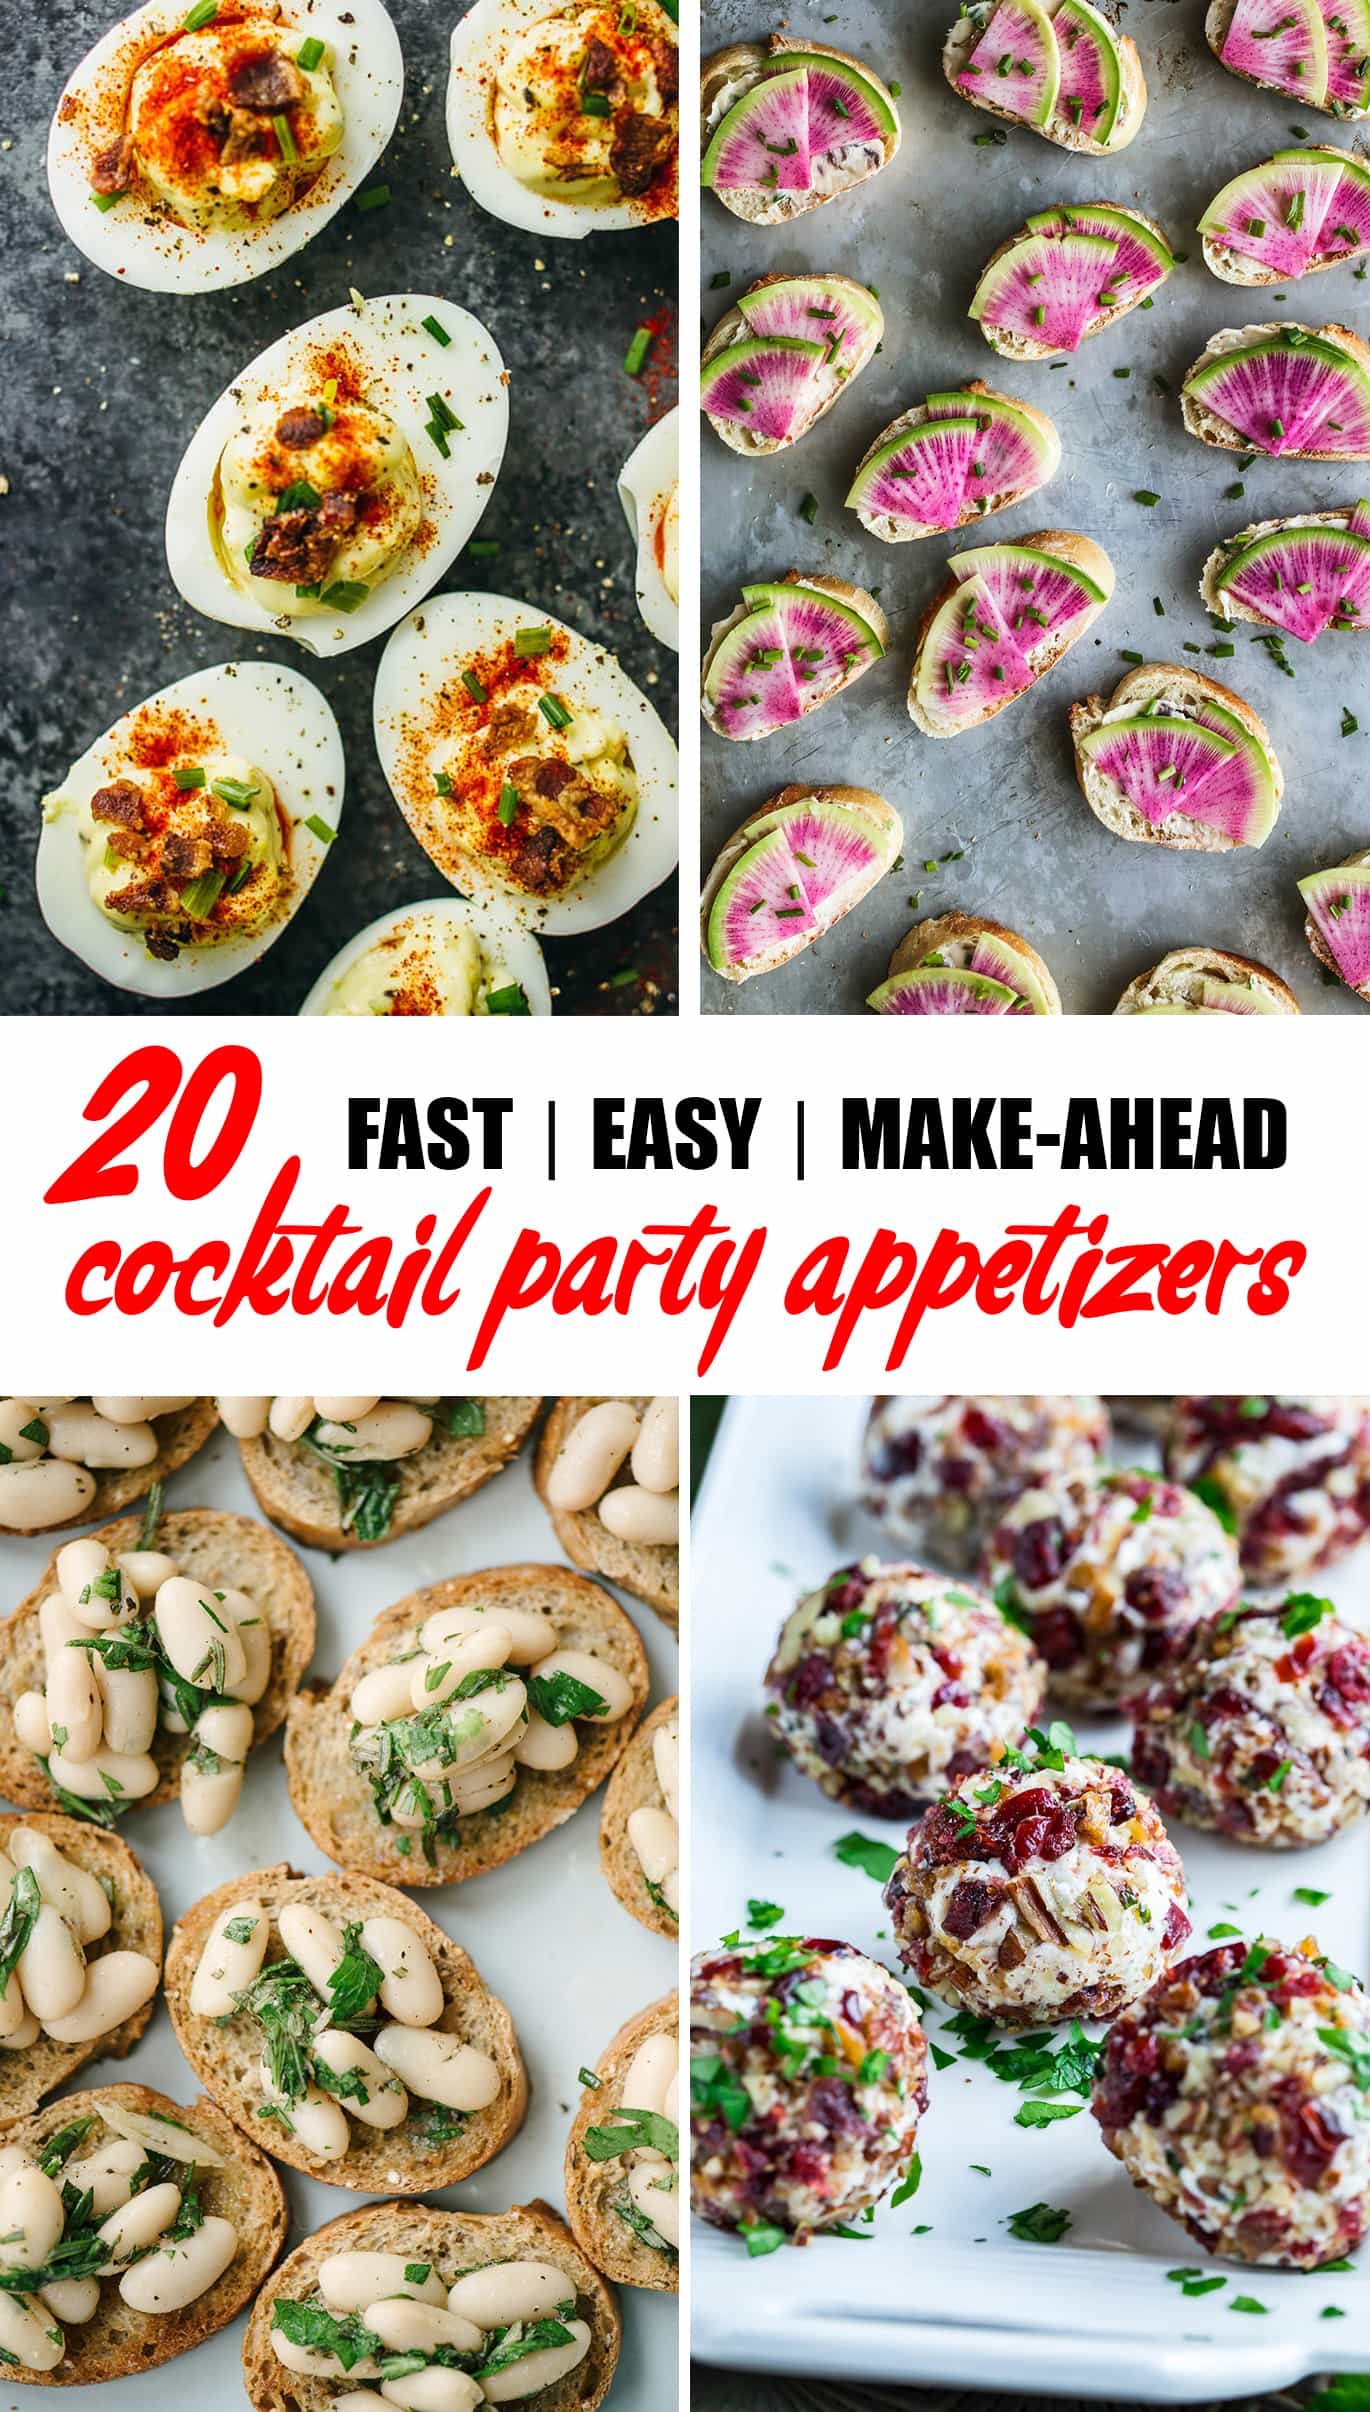 Holiday cocktail party season is just around the corner. Make your prep that much easier with one of these easy, fast, make-ahead cocktail party appetizers and hors d'oeuvres! #holidayparty #cocktailparty #appetizer #horsdoeuvres #recipe